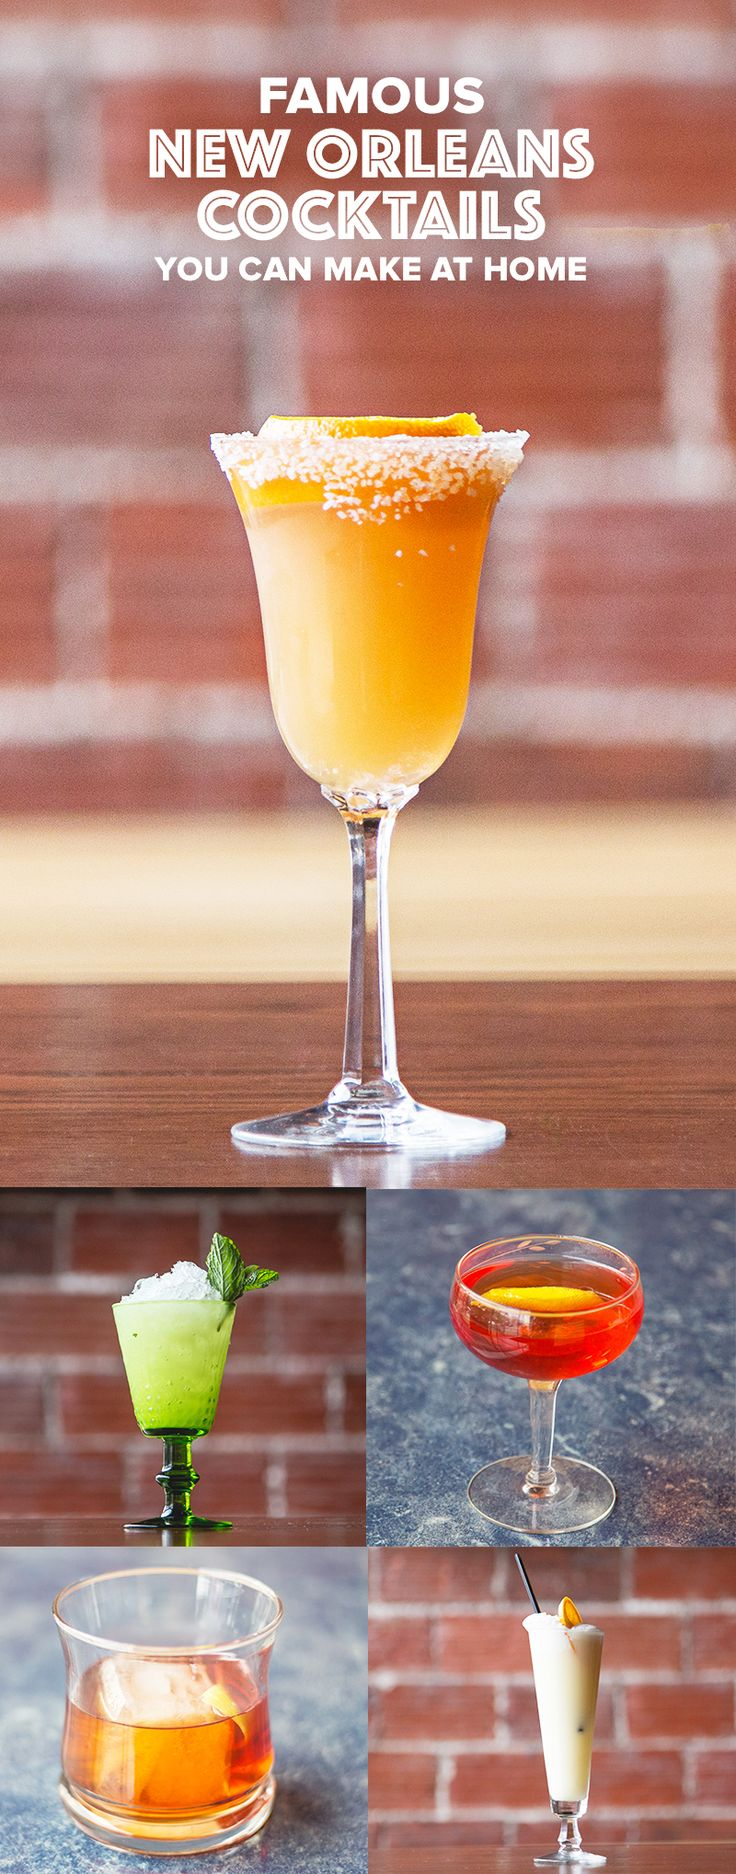 Check out preferred recipes for New Orleans cocktail classics like the Sazerac, Brandy Crusta, Vieux Carre, Absinthe Frappe, and Ramos Gin Fizz. Great for Mardi Gras!